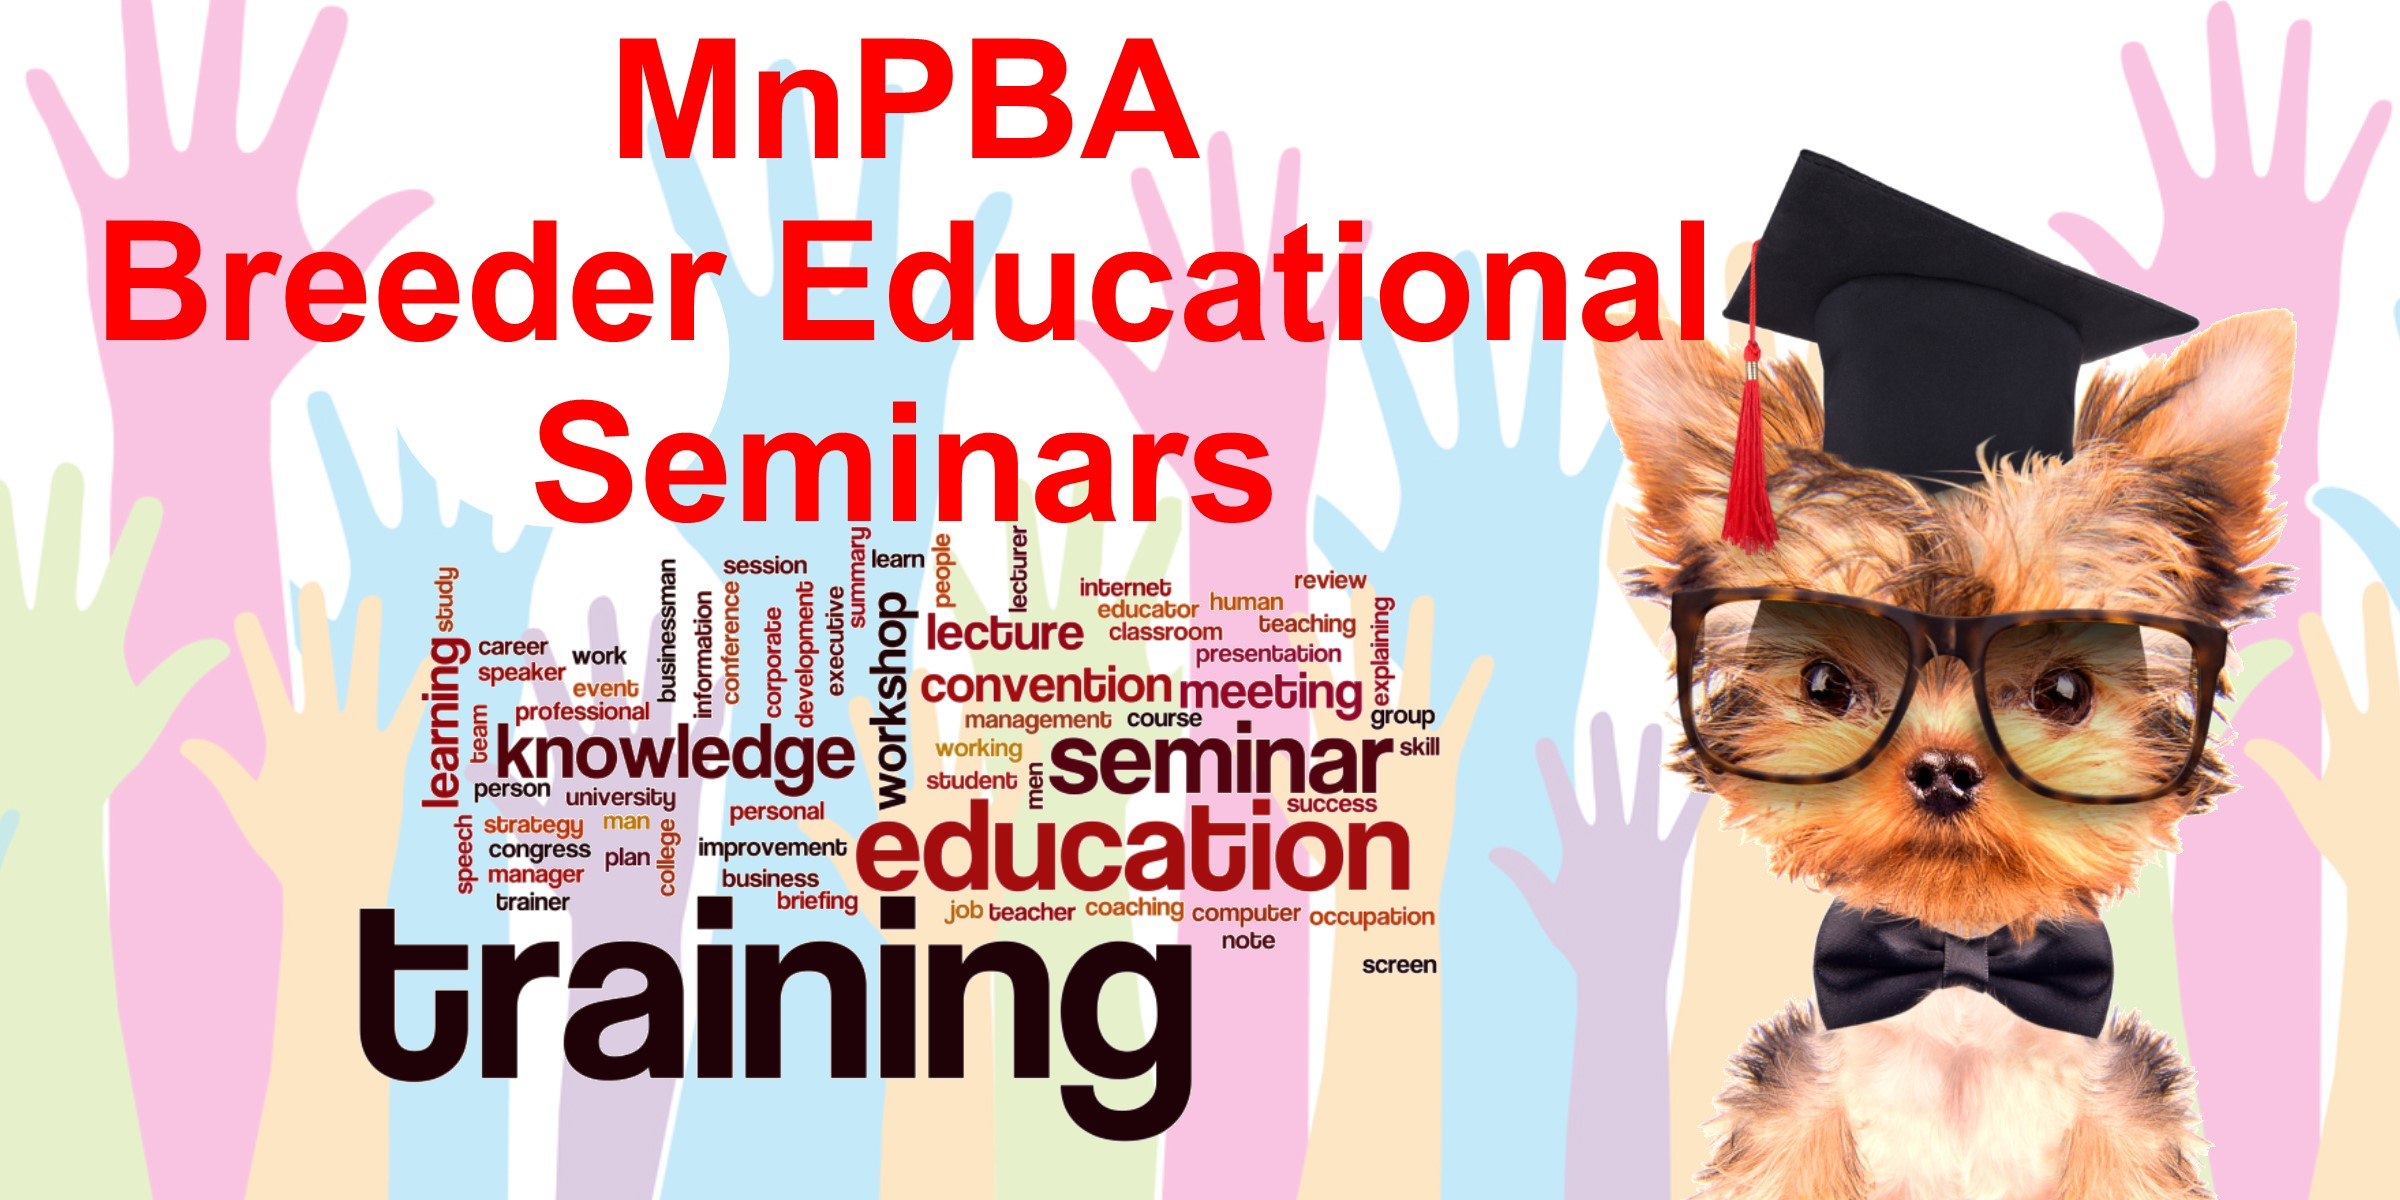 Upcoming MnPBA 2018 Annual Educational Seminar and Trade Show